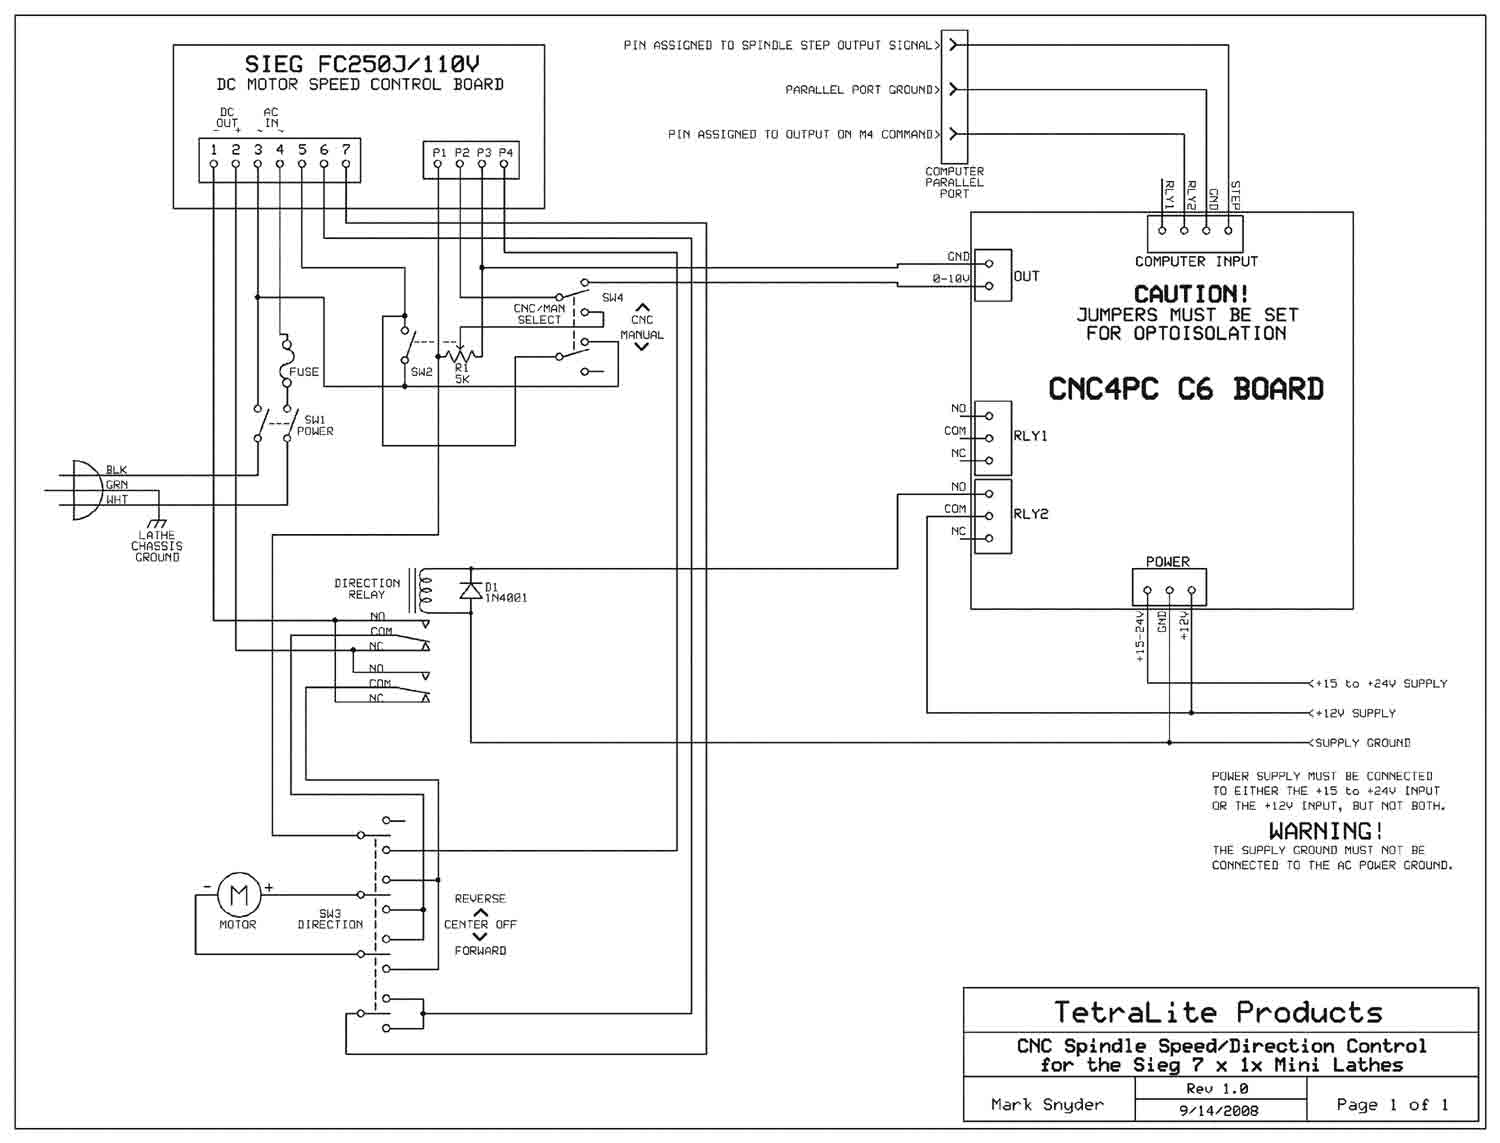 10 Hp Baldor Motor Wiring Diagram - Www.toyskids.co • Baldor Wiring Diagram on clark wiring diagram, rockwell wiring diagram, viking wiring diagram, sullair wiring diagram, smc wiring diagram, panasonic wiring diagram, demag wiring diagram, atlas wiring diagram, toshiba wiring diagram, abb wiring diagram, taylor wiring diagram, balluff wiring diagram, sew eurodrive wiring diagram, a.o. smith wiring diagram, devilbiss wiring diagram, norton wiring diagram, becker wiring diagram, ingersoll rand wiring diagram, little giant wiring diagram, yaskawa wiring diagram,